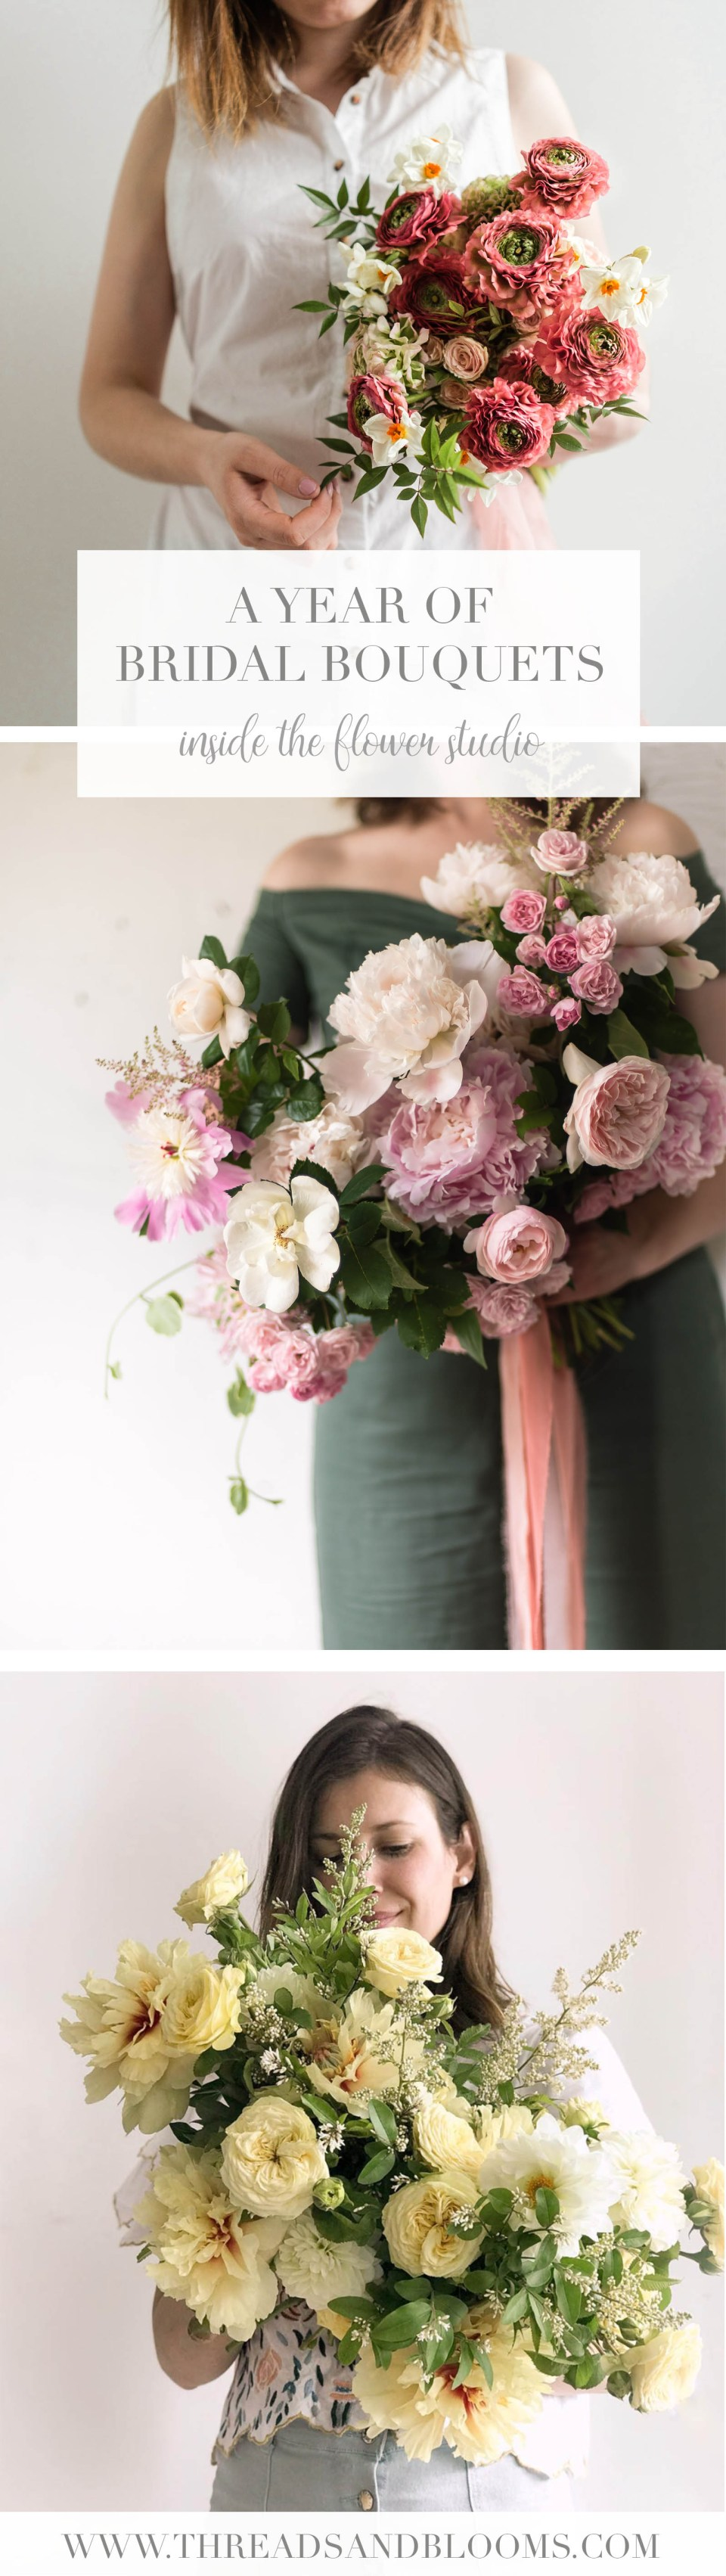 Bridal Bouquets for All Seasons